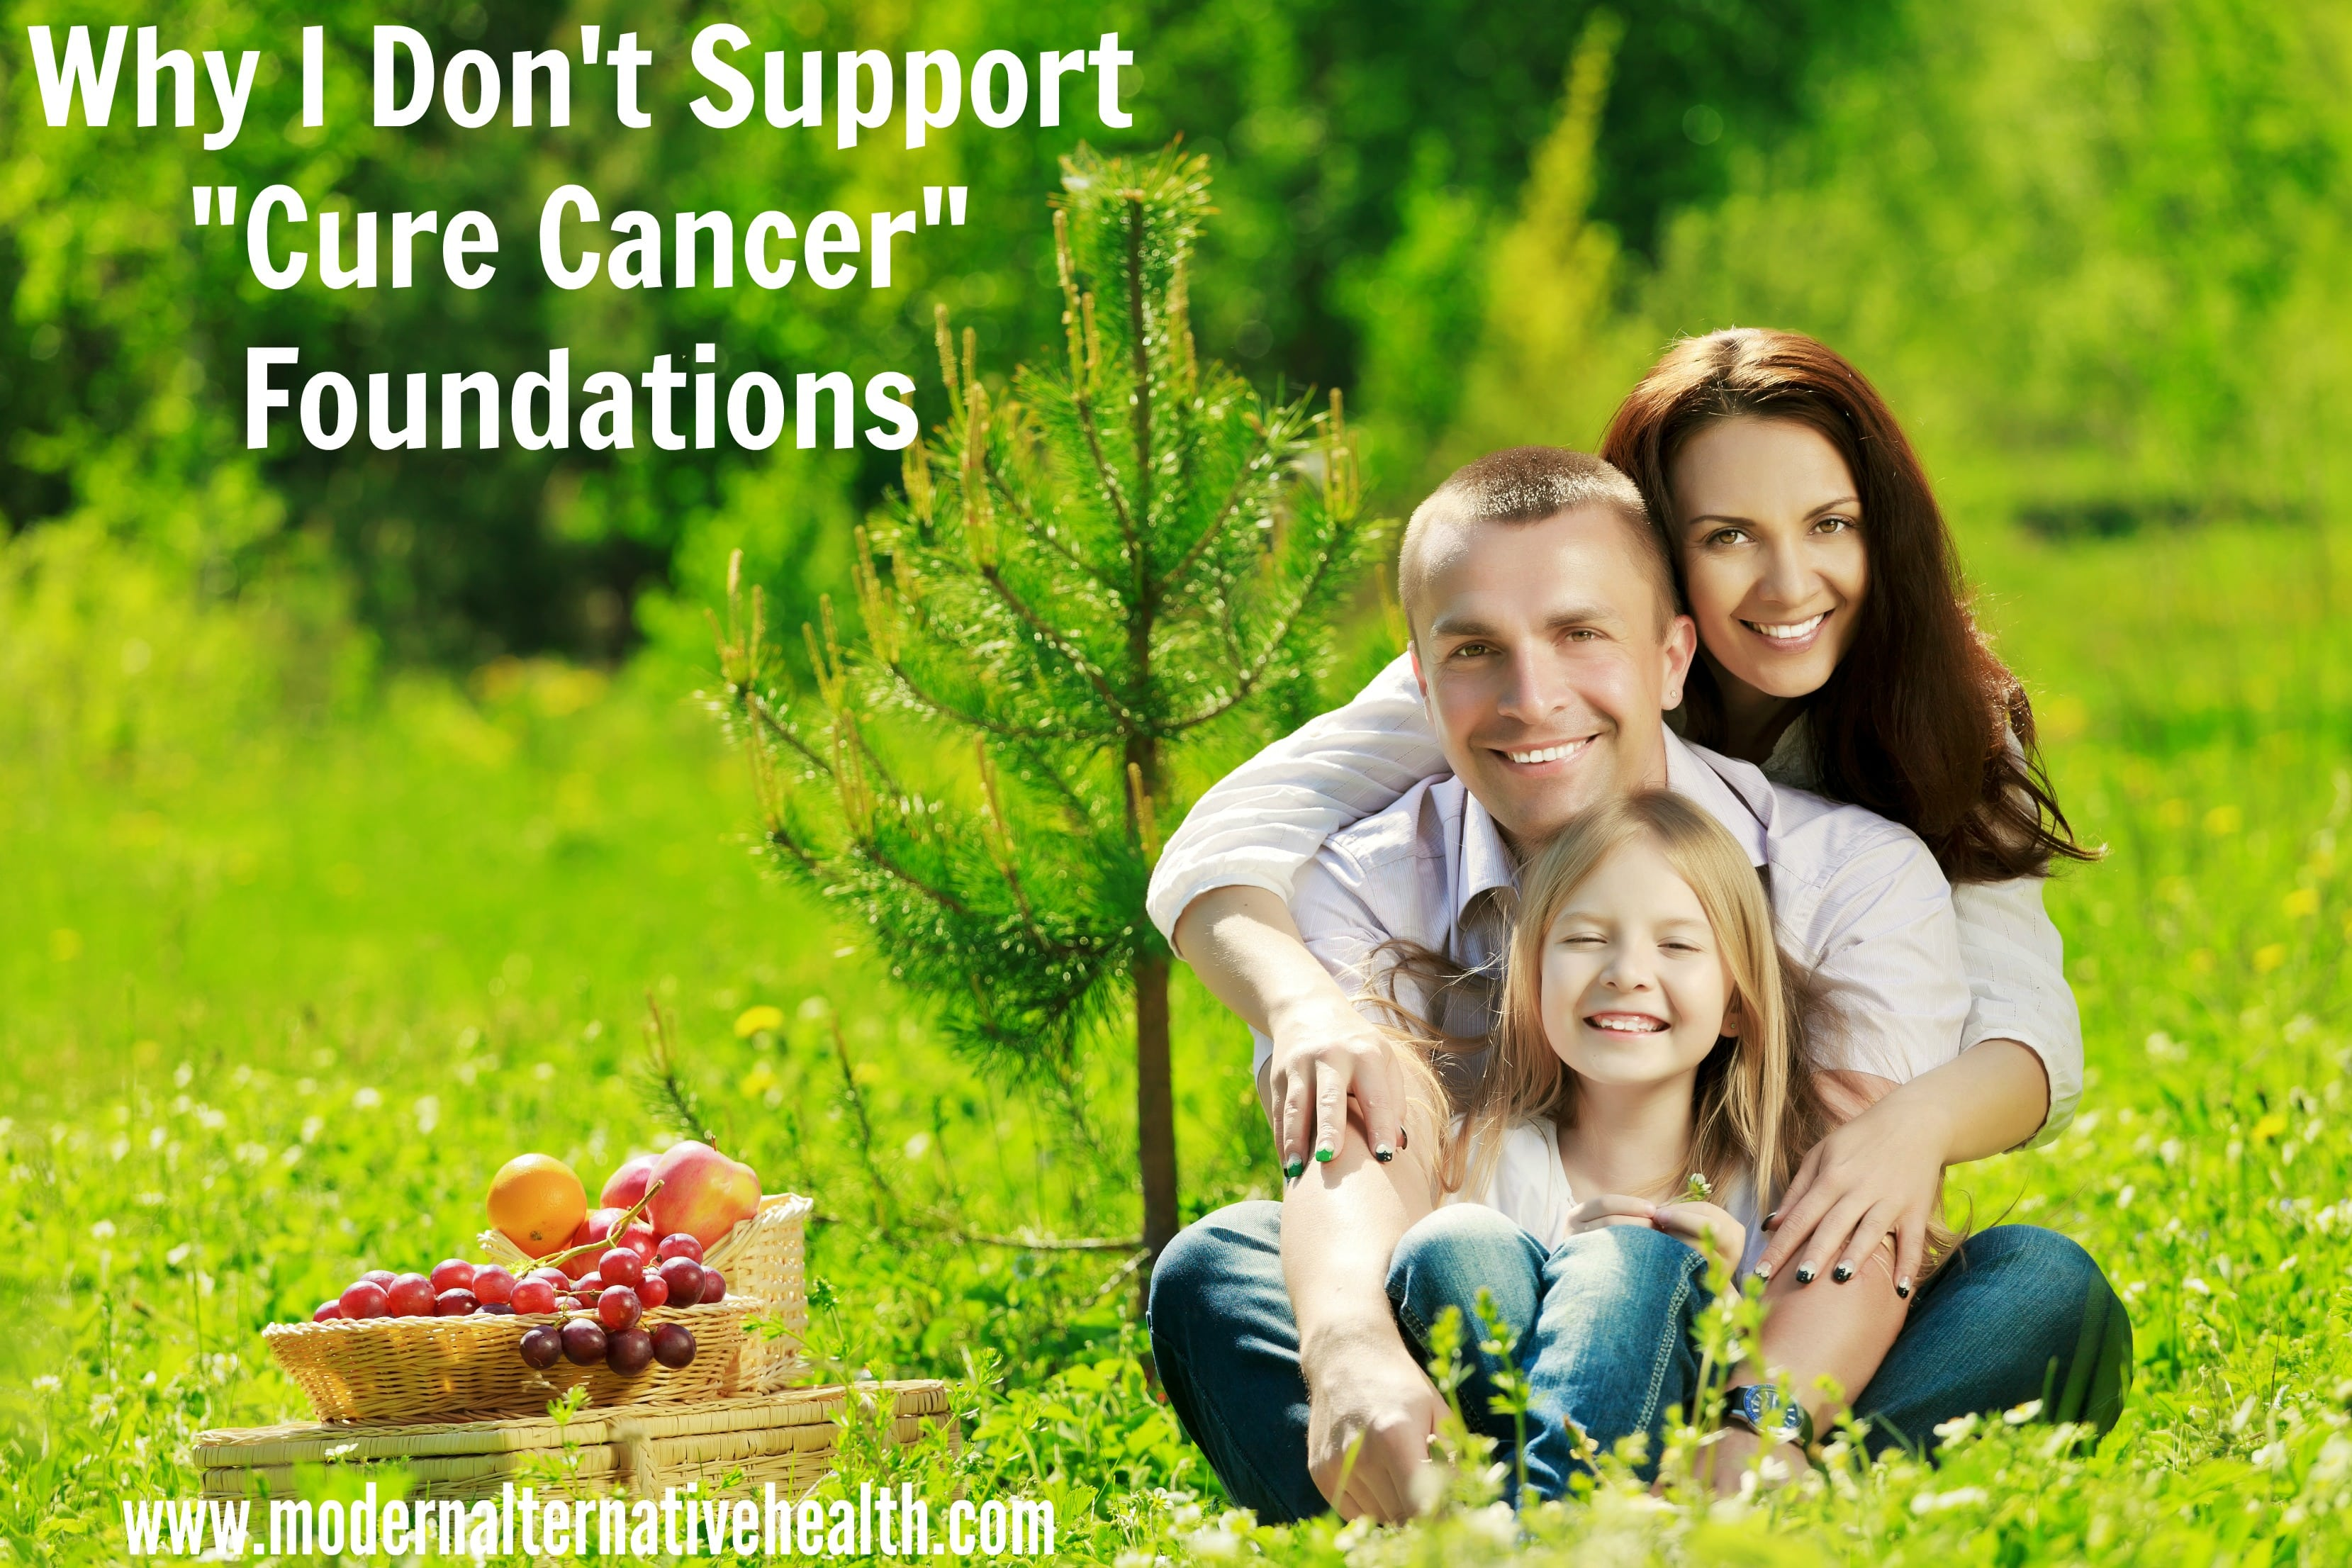 Why I Don't Support Cure Cancer Foundations